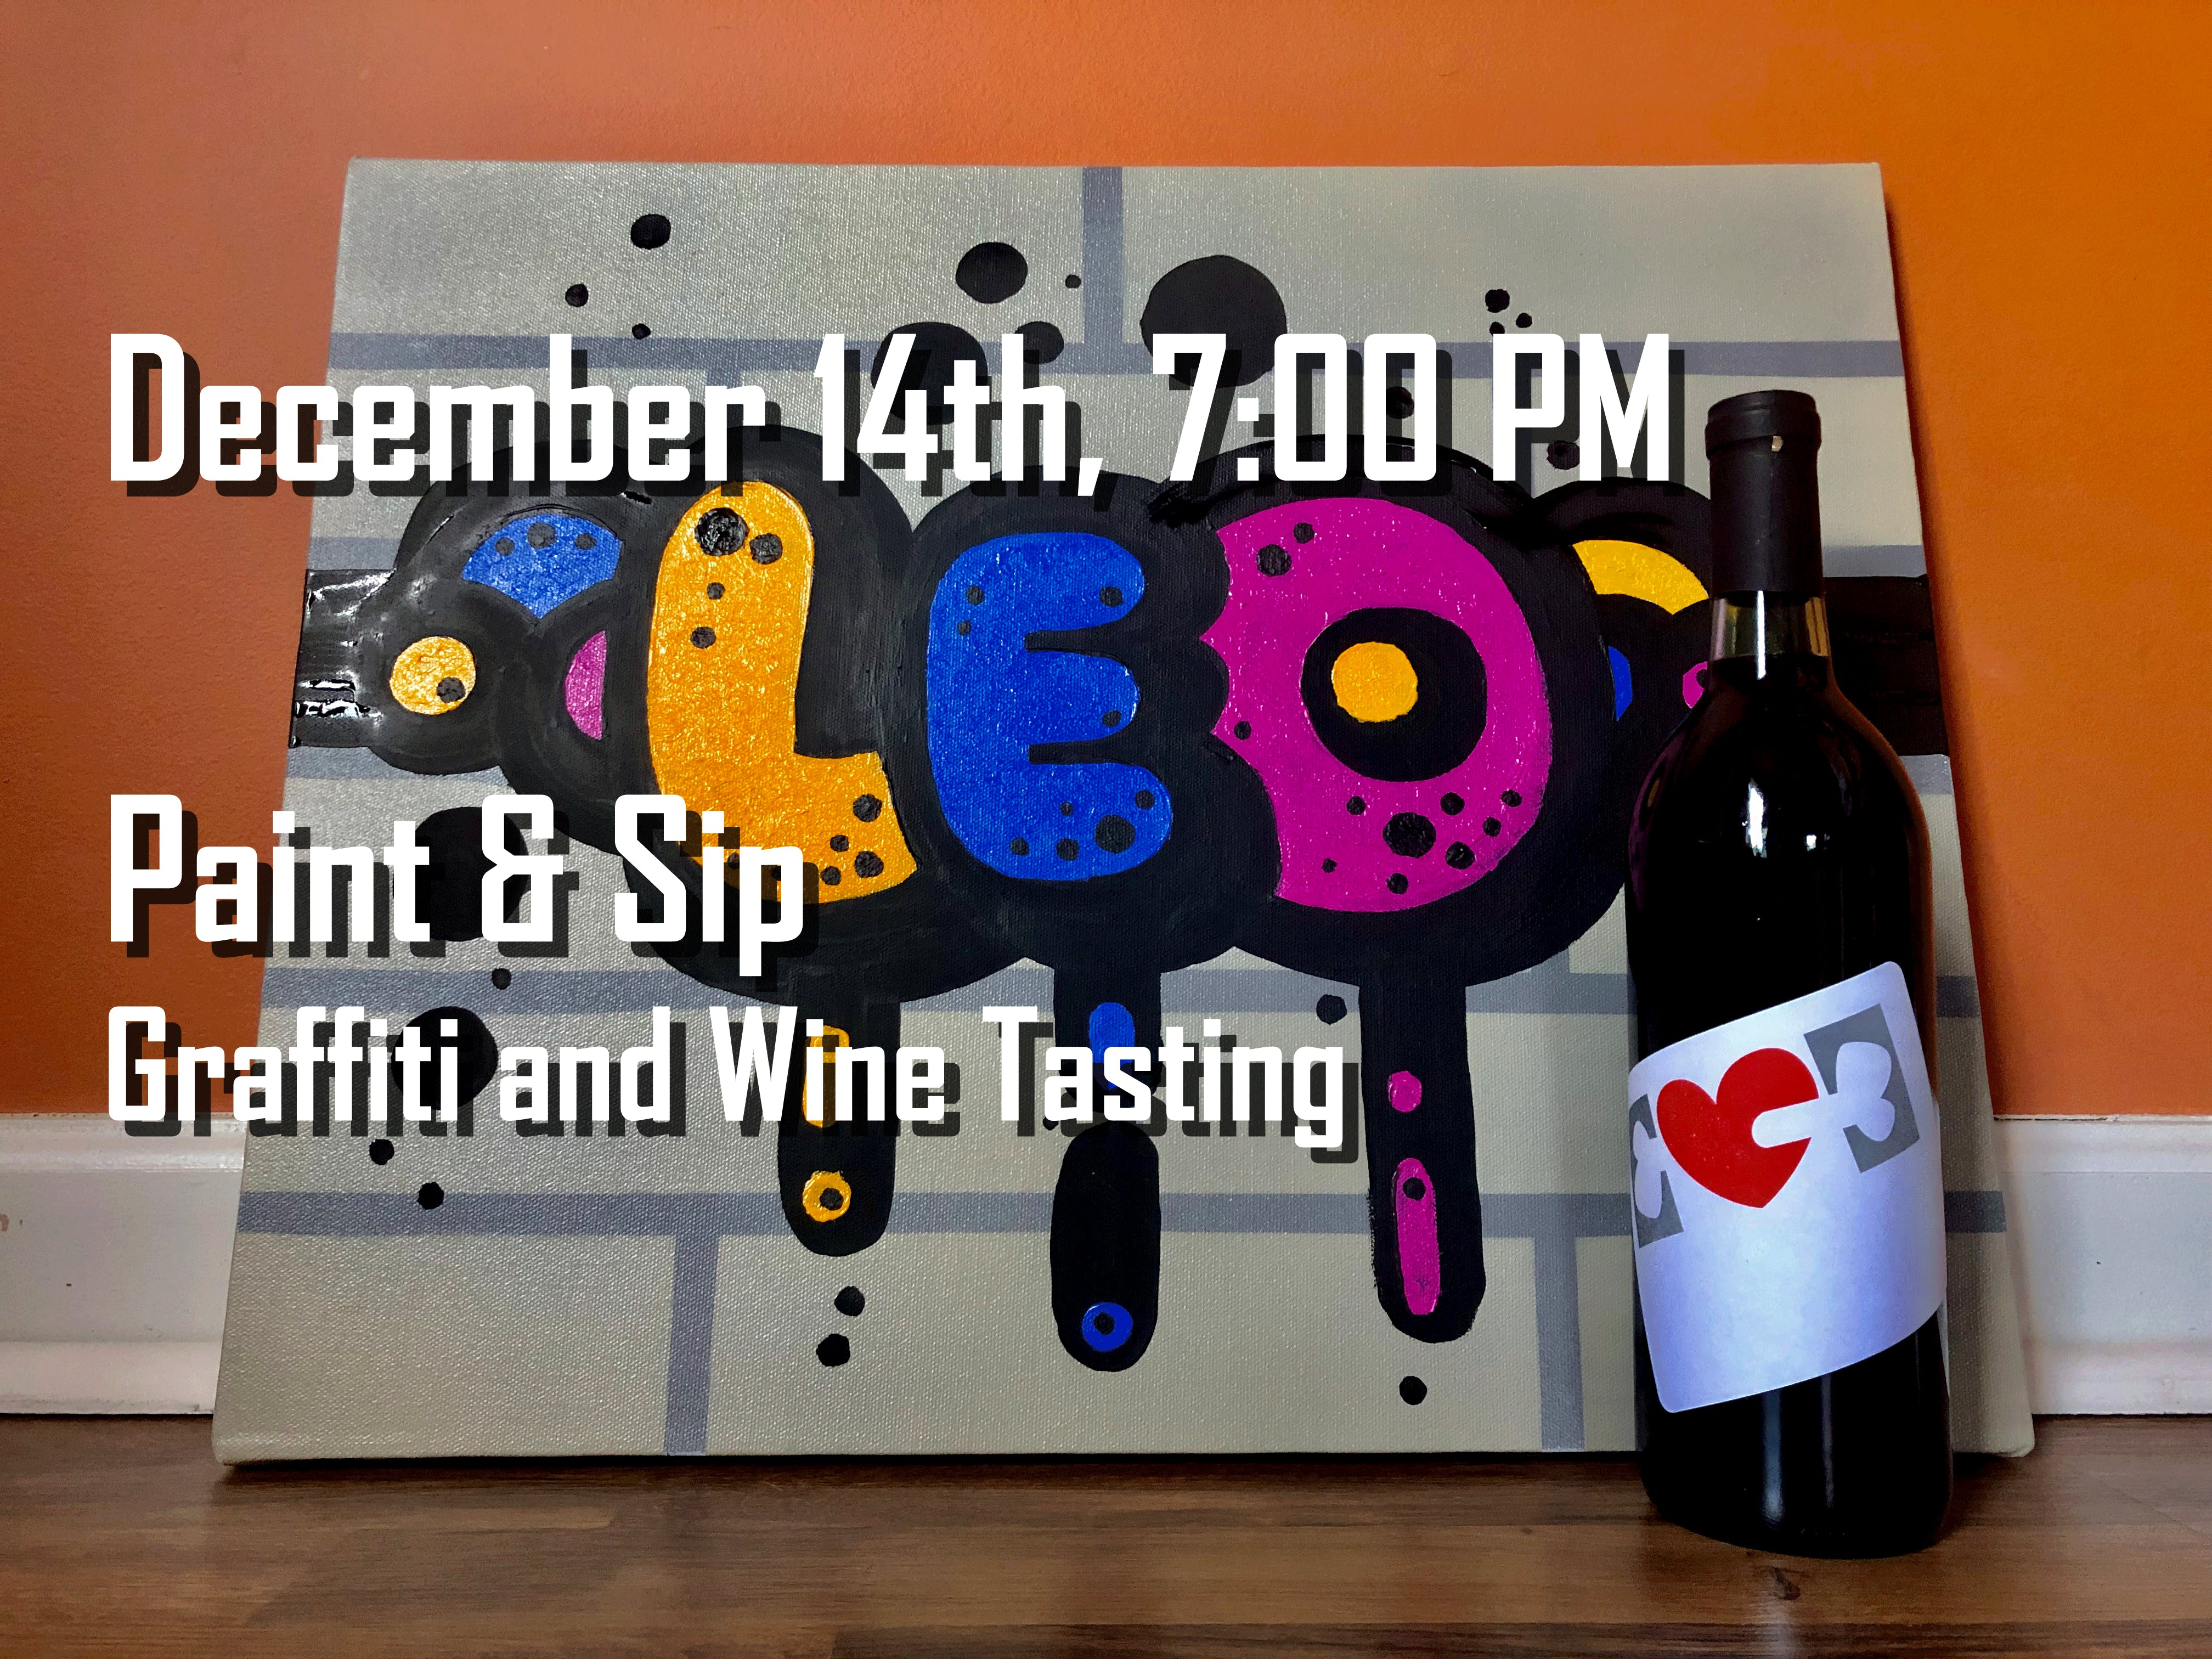 Paint & Sip at the Winery!